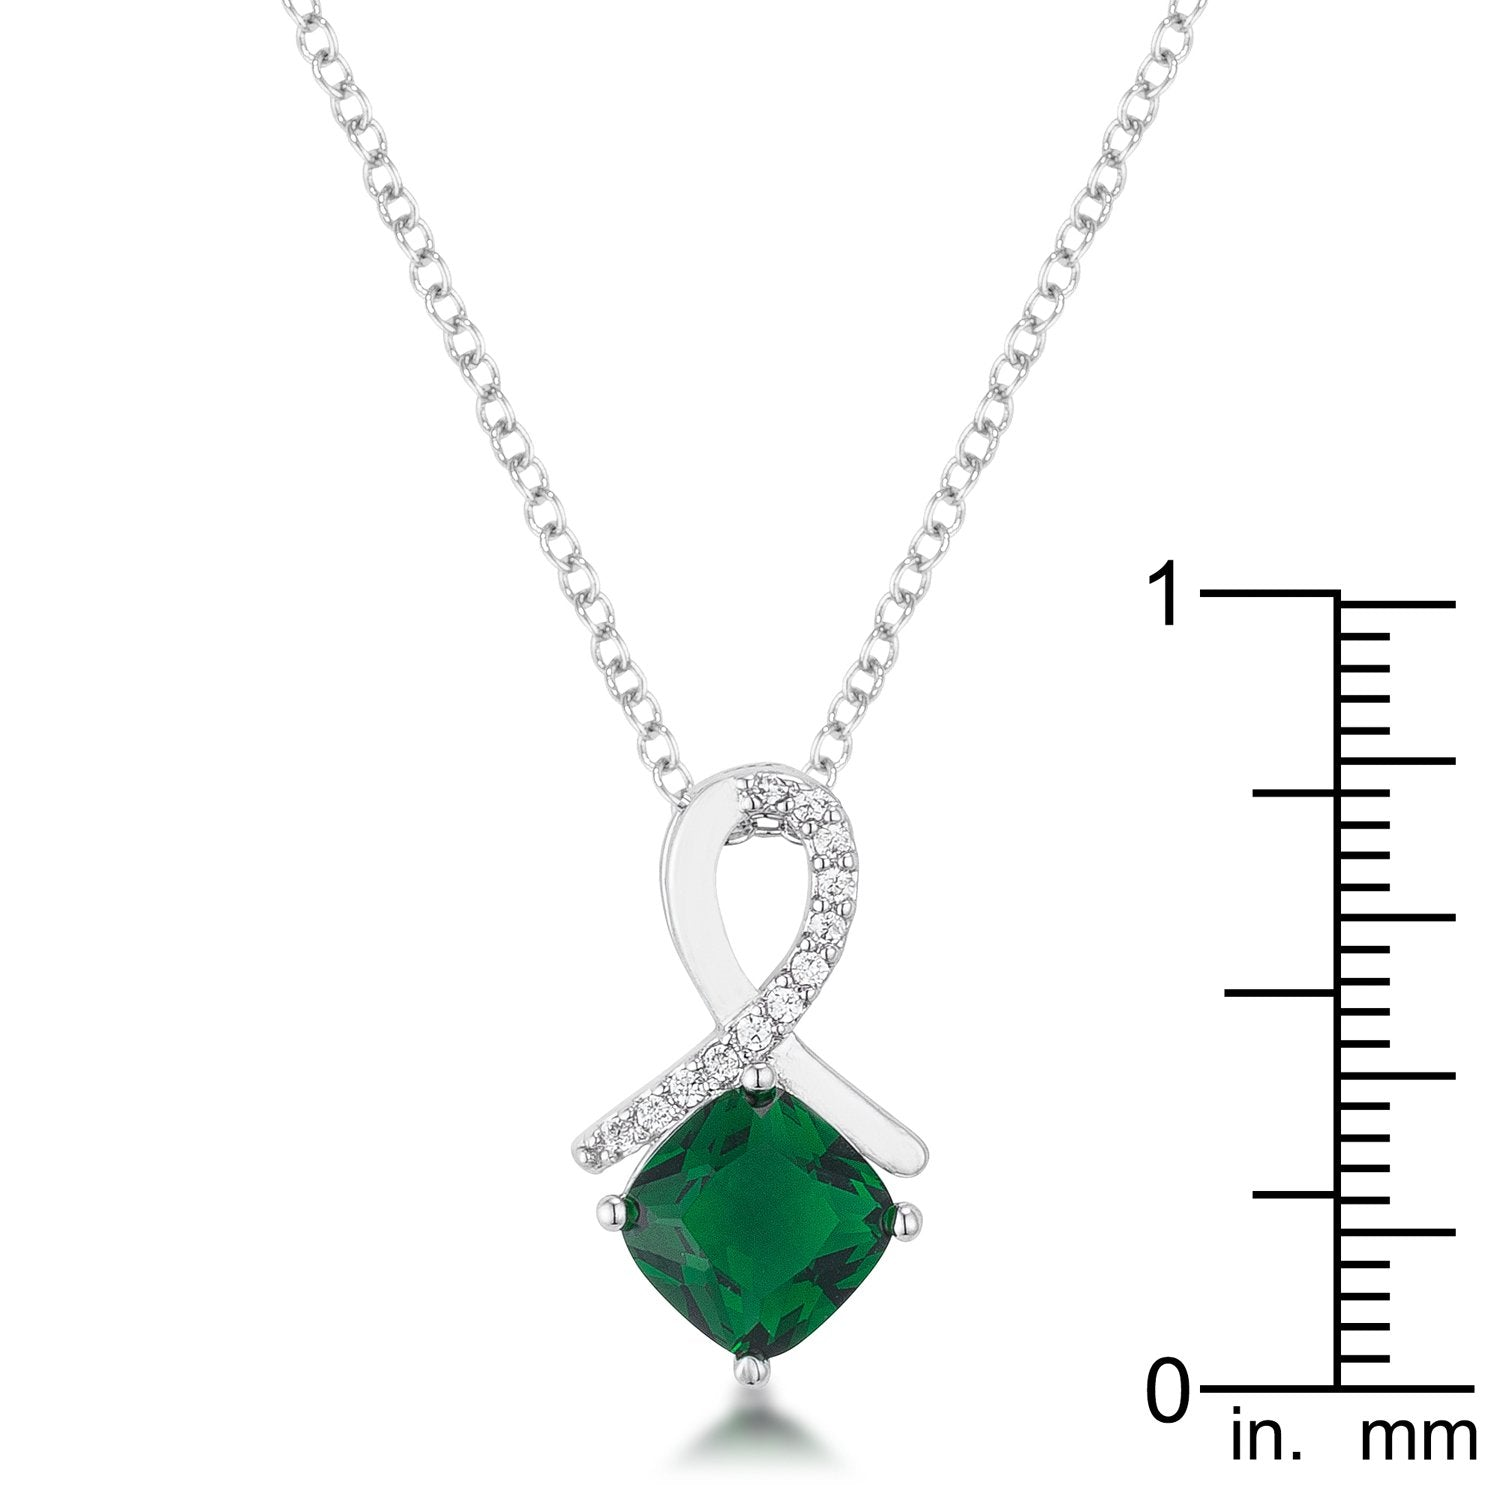 8mm Cushion Cut Cubic Zirconia Emerald Fashion Pendant